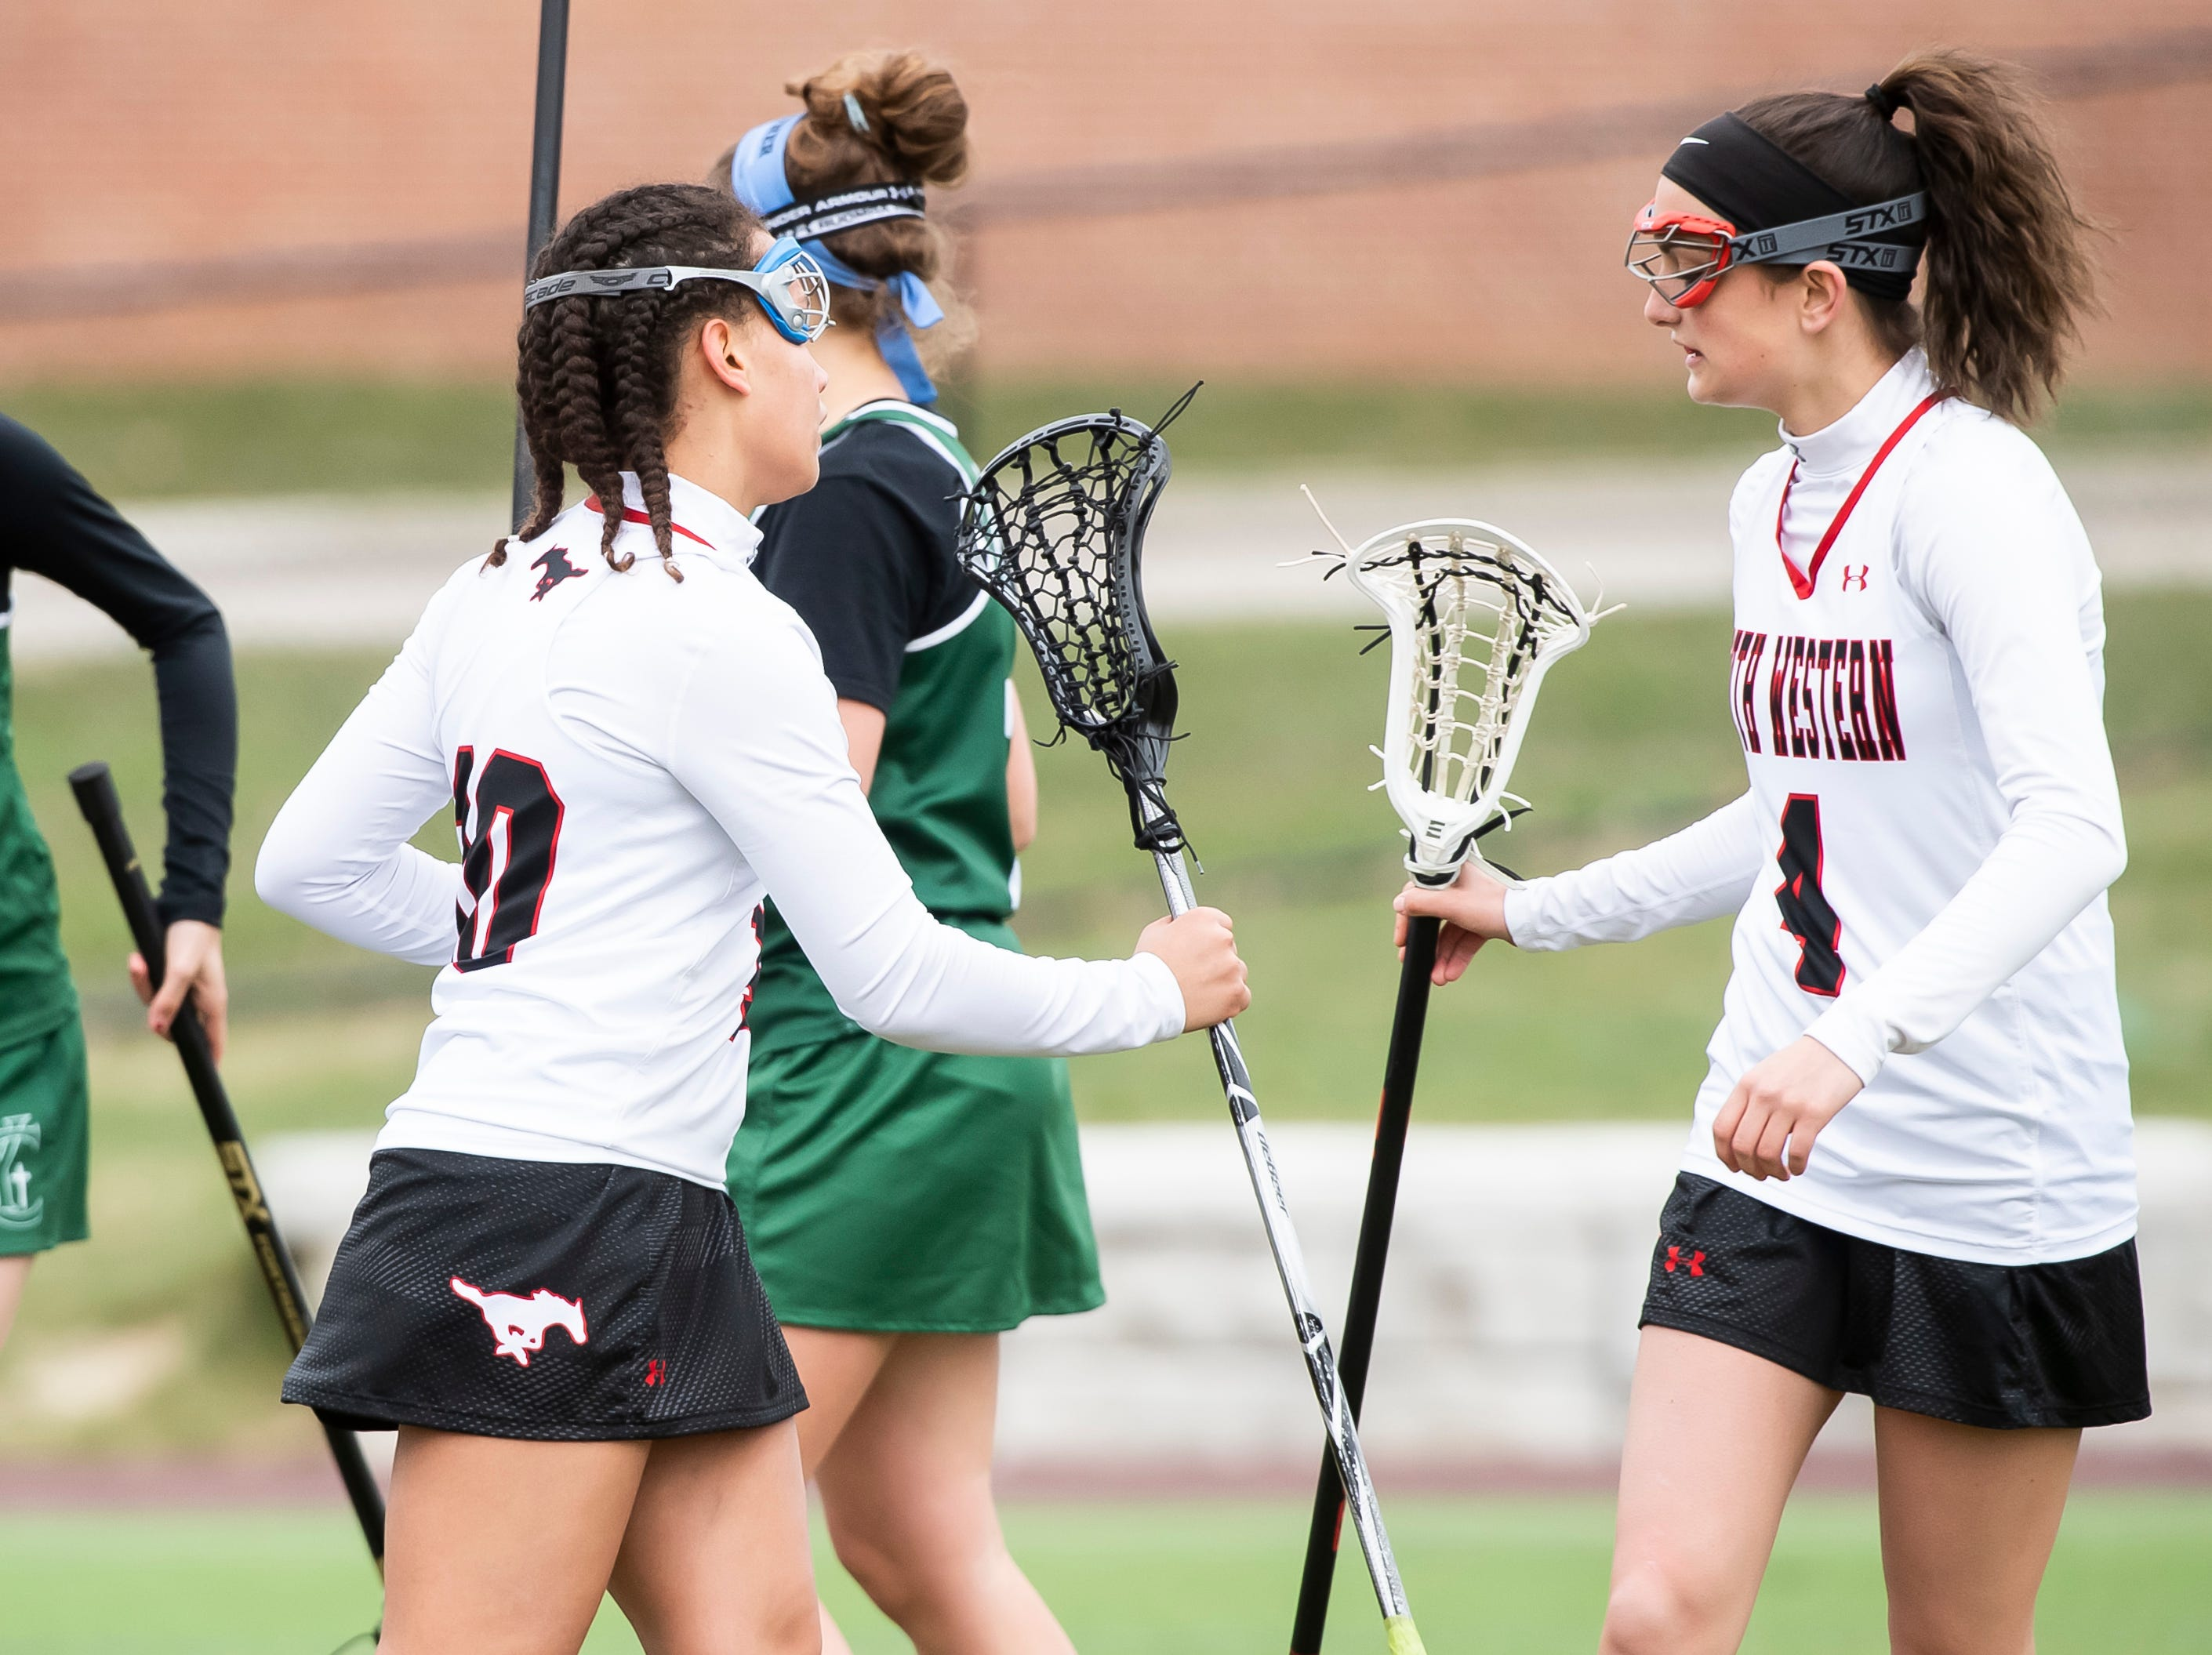 South Western's Caitlyn Coates and Ella Baker (4) tap sticks after Coates scored a goal during a YAIAA lacrosse game against York Catholic on Tuesday, April 2, 2019. South Western fell 19-7.